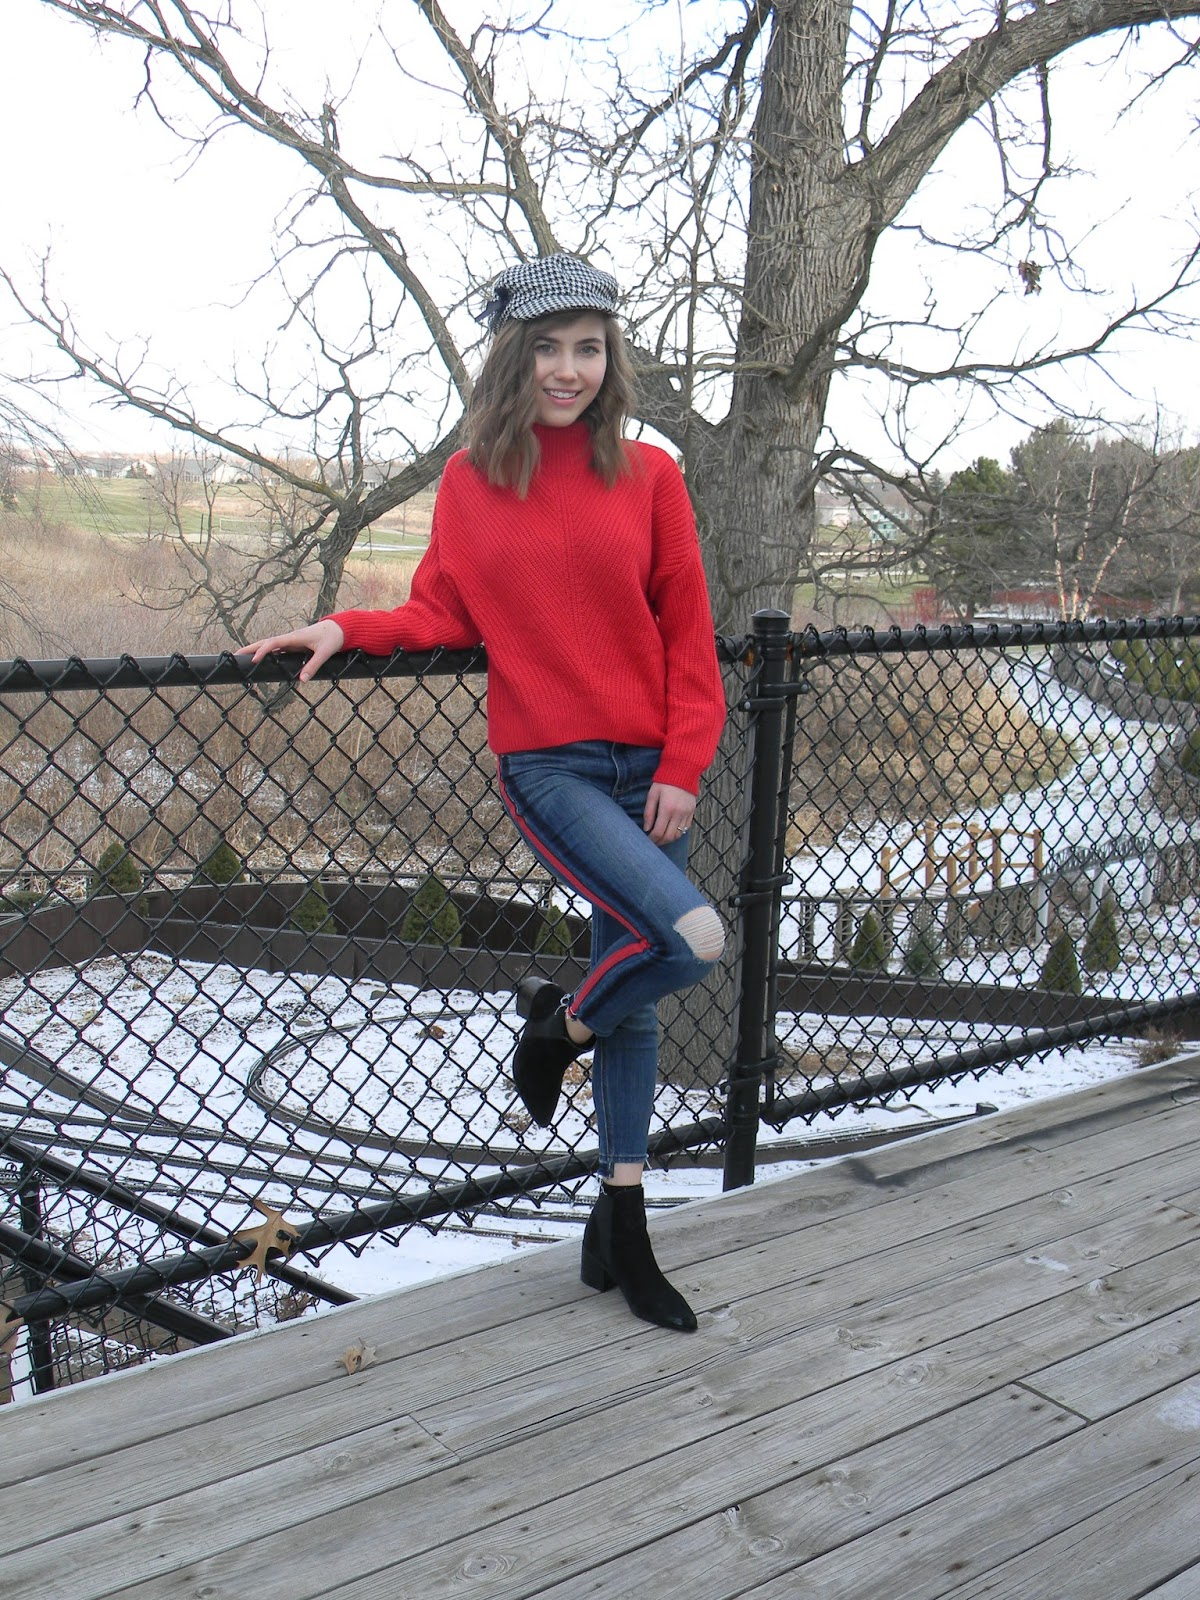 HALFSTACK MEDIA: How to Style: Bright Red Sweater